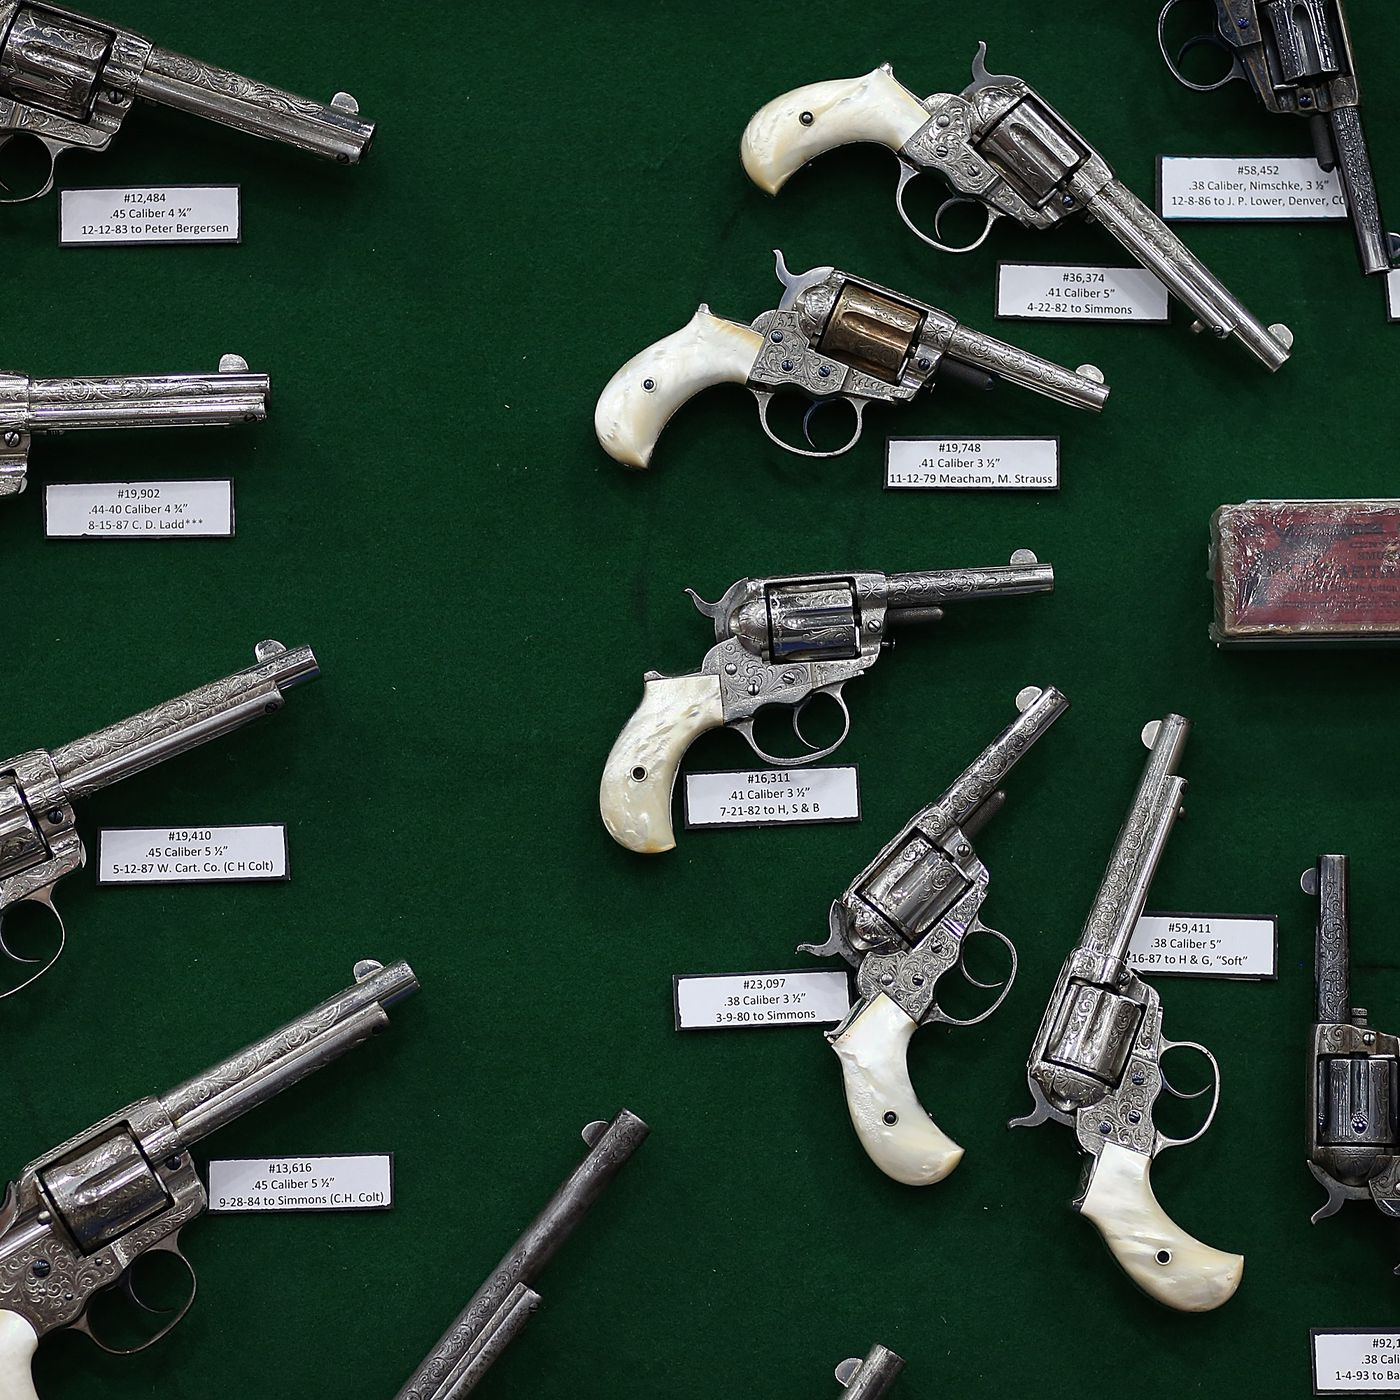 When gun owners meet for the NRA convention, gun injury